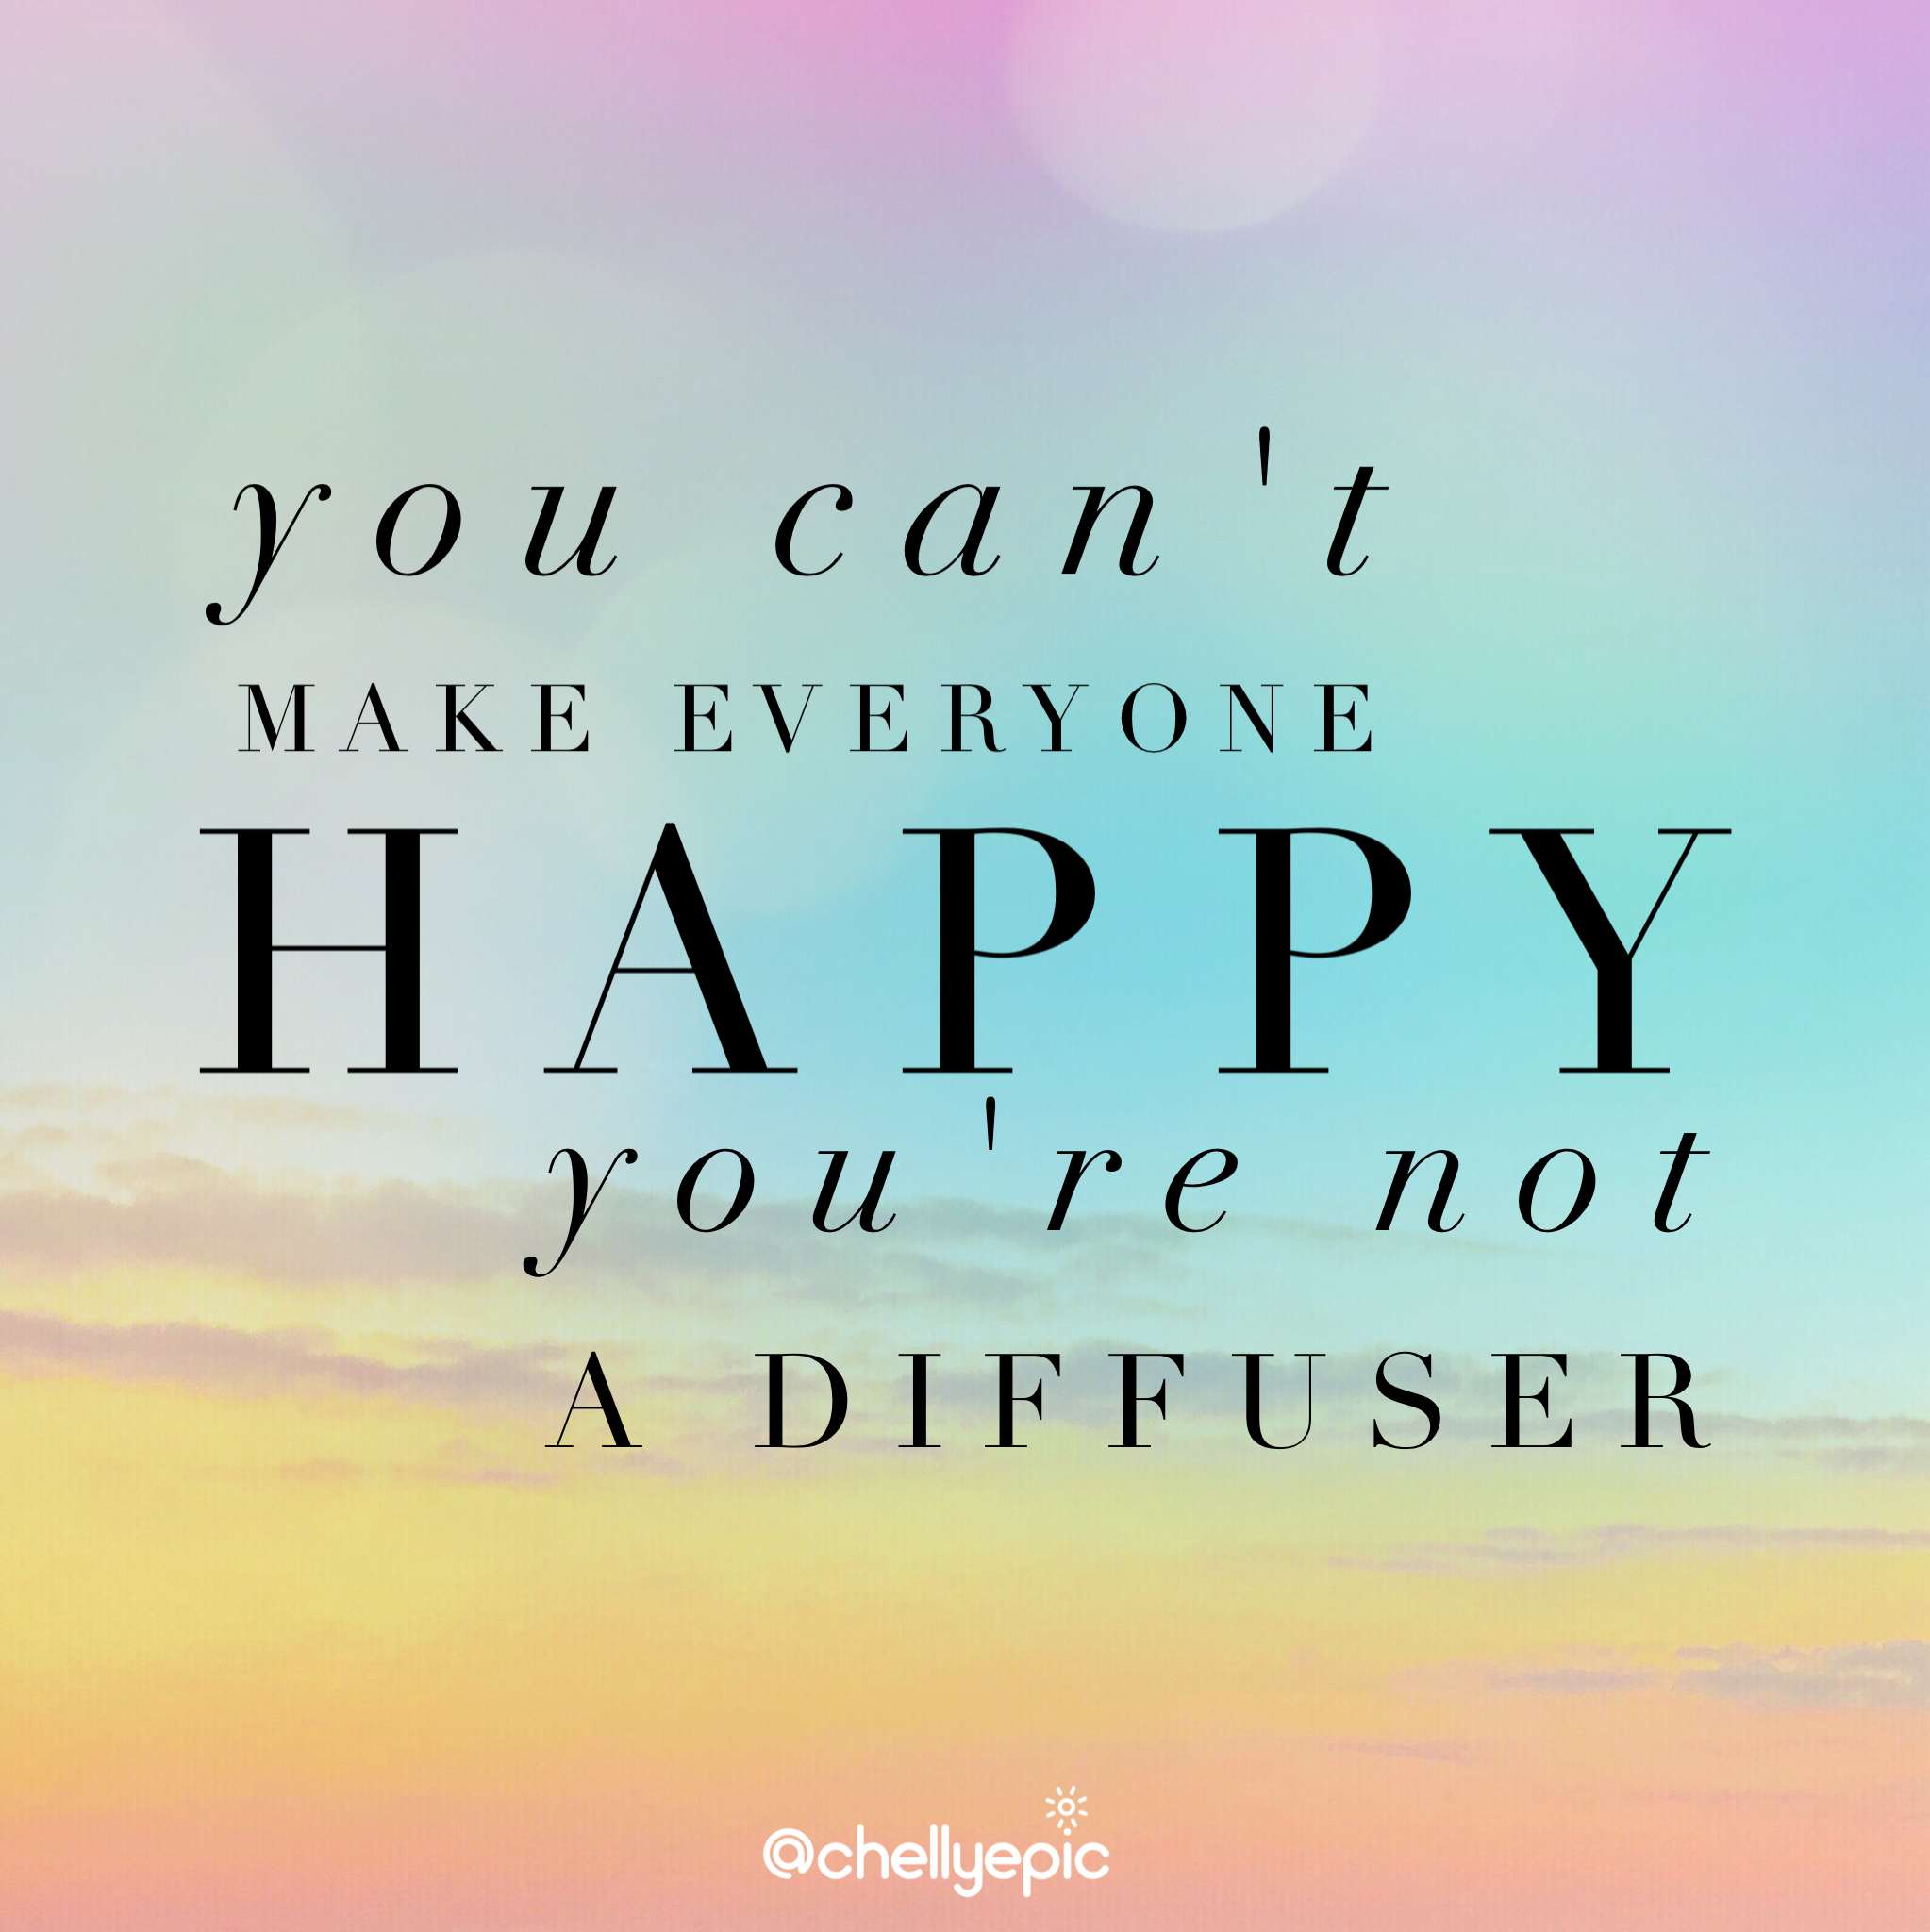 You can't make everyone a happy. You're not a diffuser